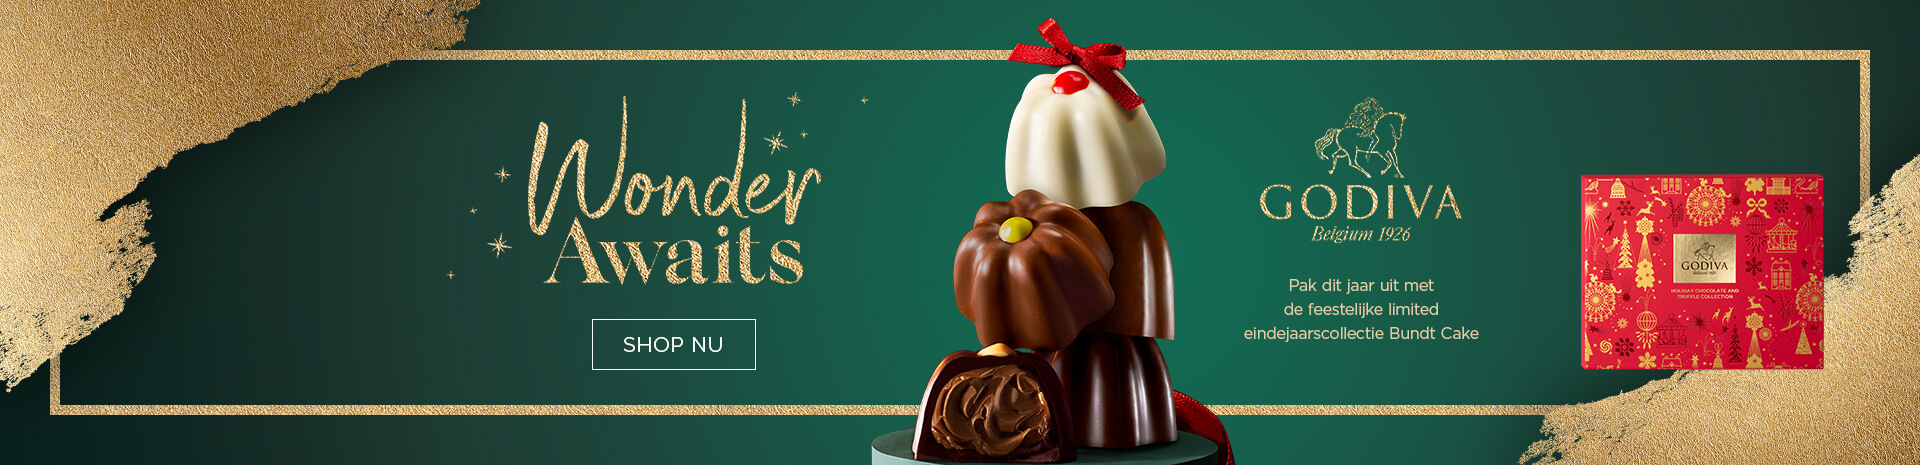 Wonder awaits Christmas 2019 - Godiva